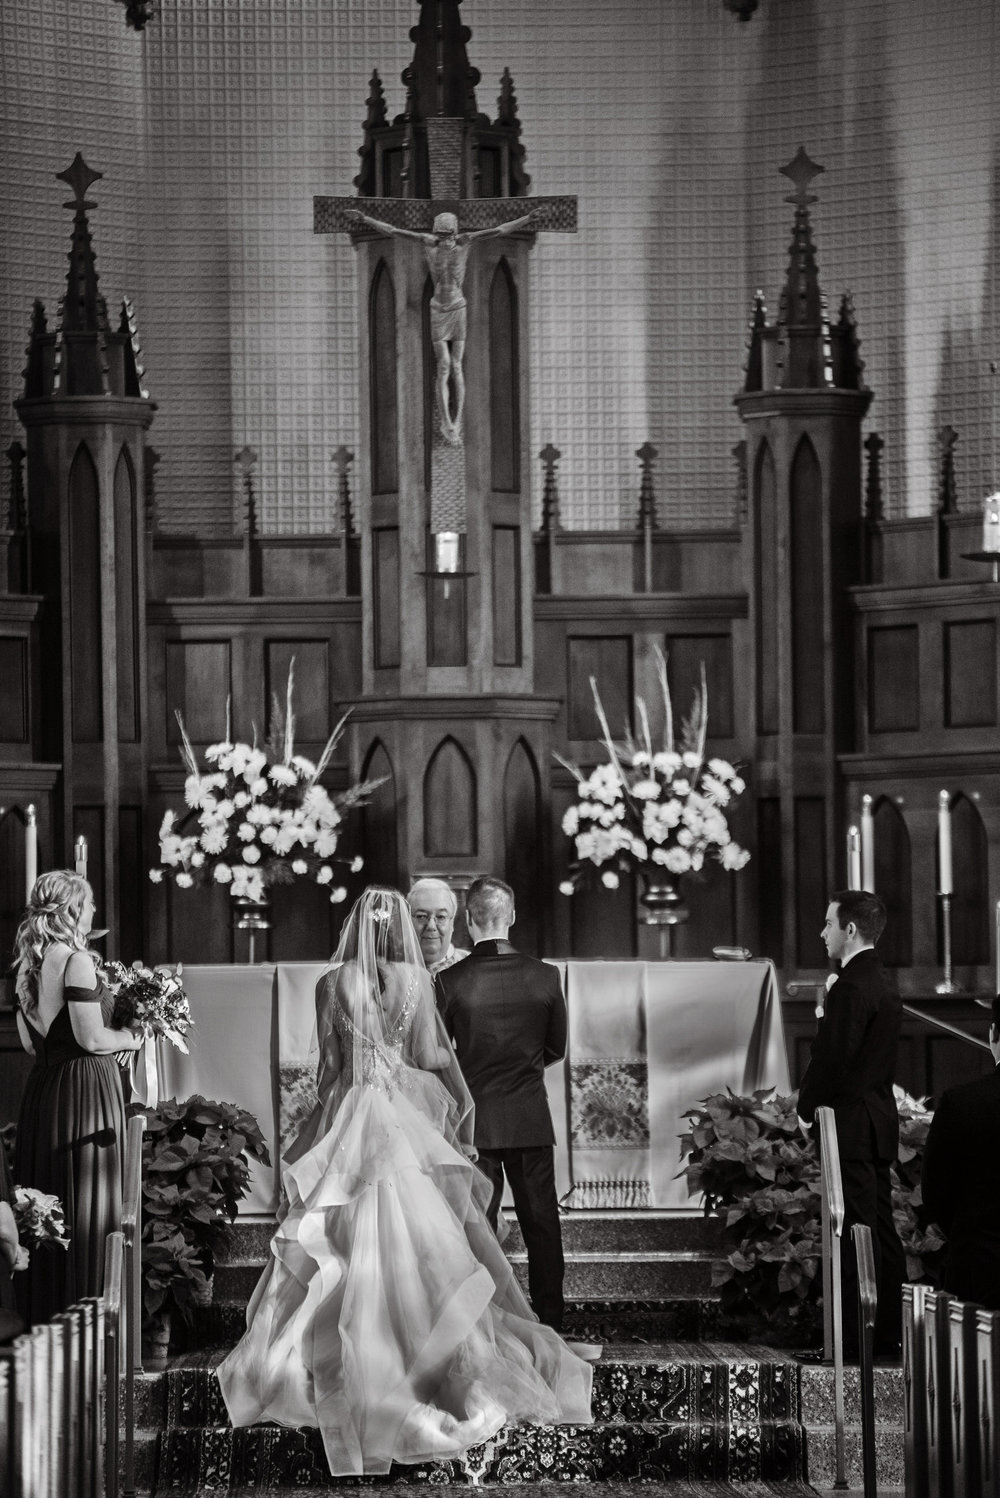 ValleyMansionWedding-Colleen&Conor-Ceremony-137.jpg